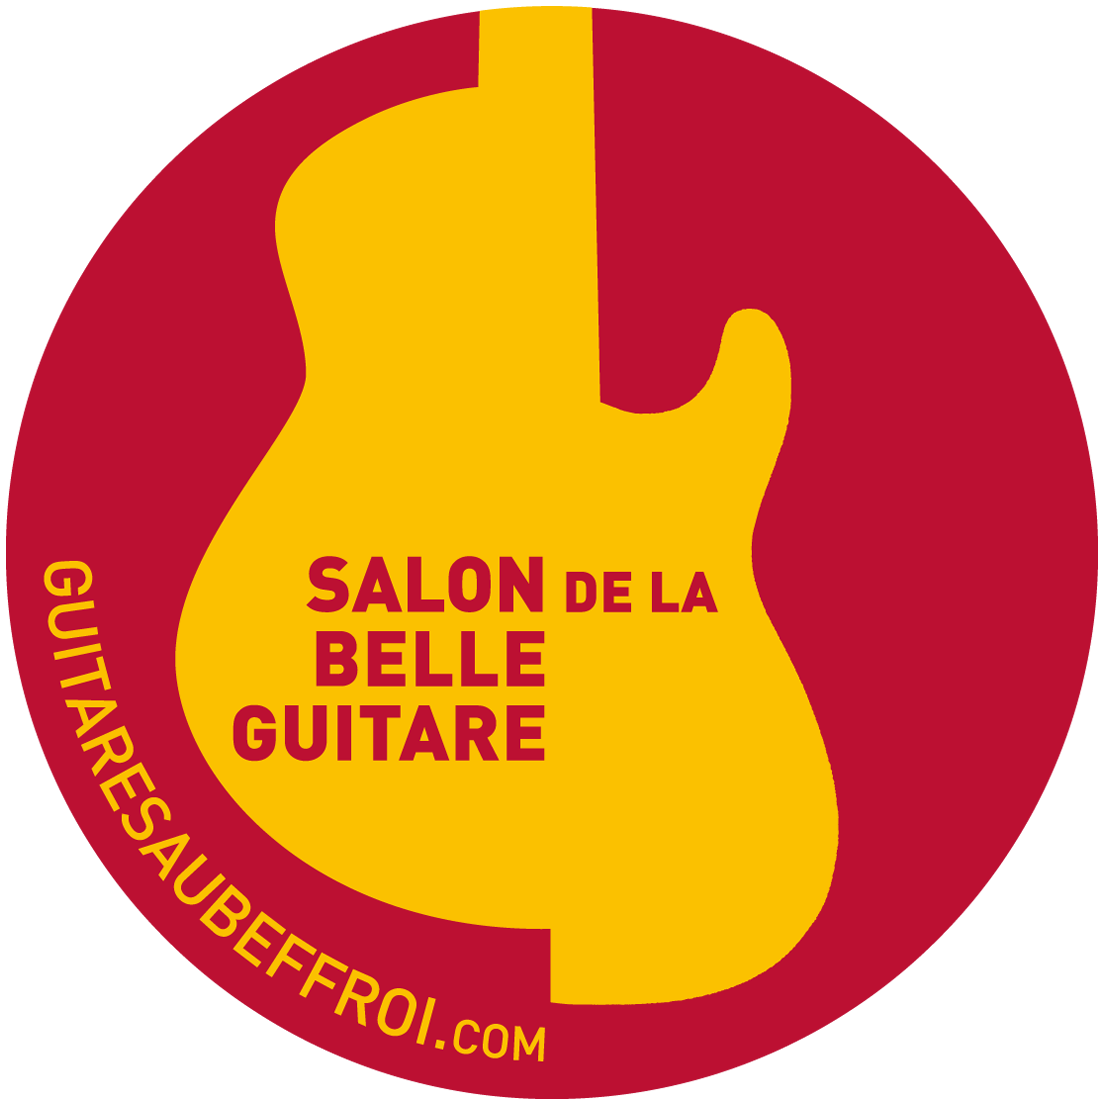 Billetterie 2020 Guitares au Beffroi Salon de la Belle Guitare